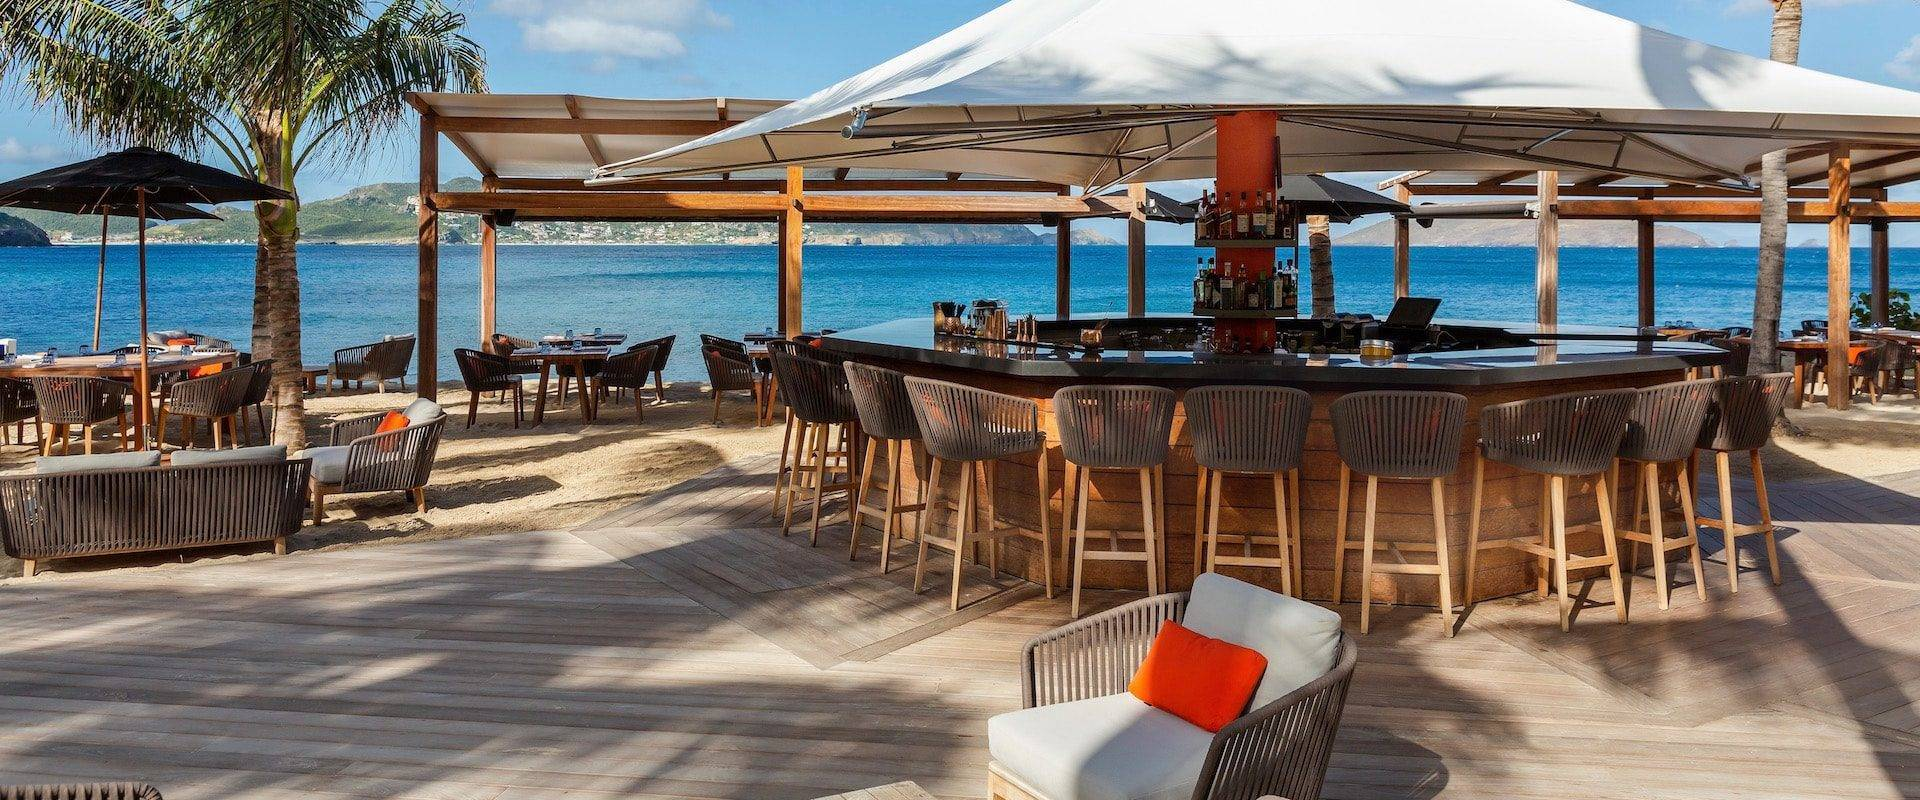 1-Mango-beach-Club-st-barth